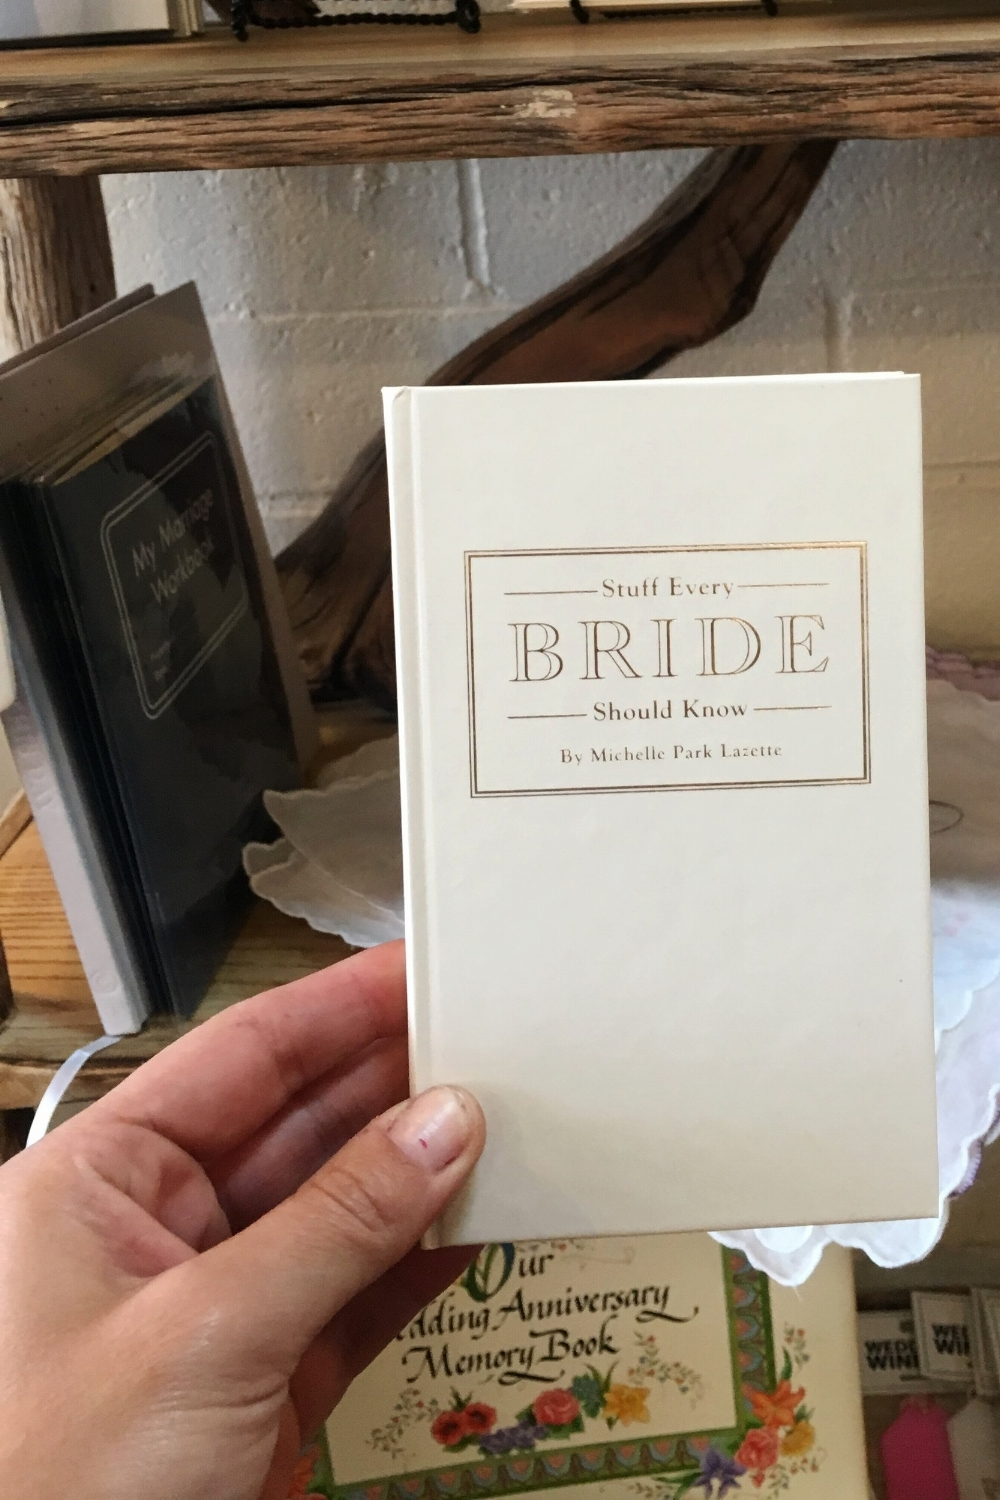 Bride Book INITIALS SAND PROPOSAL BRIDE BASKET Propose travel puertorico trending Bride Guide Love Letter Motion Magazine Vintage LOVE couples advice  newhome  https://www.findingarizonapodcast.com/finding-az-engagement/